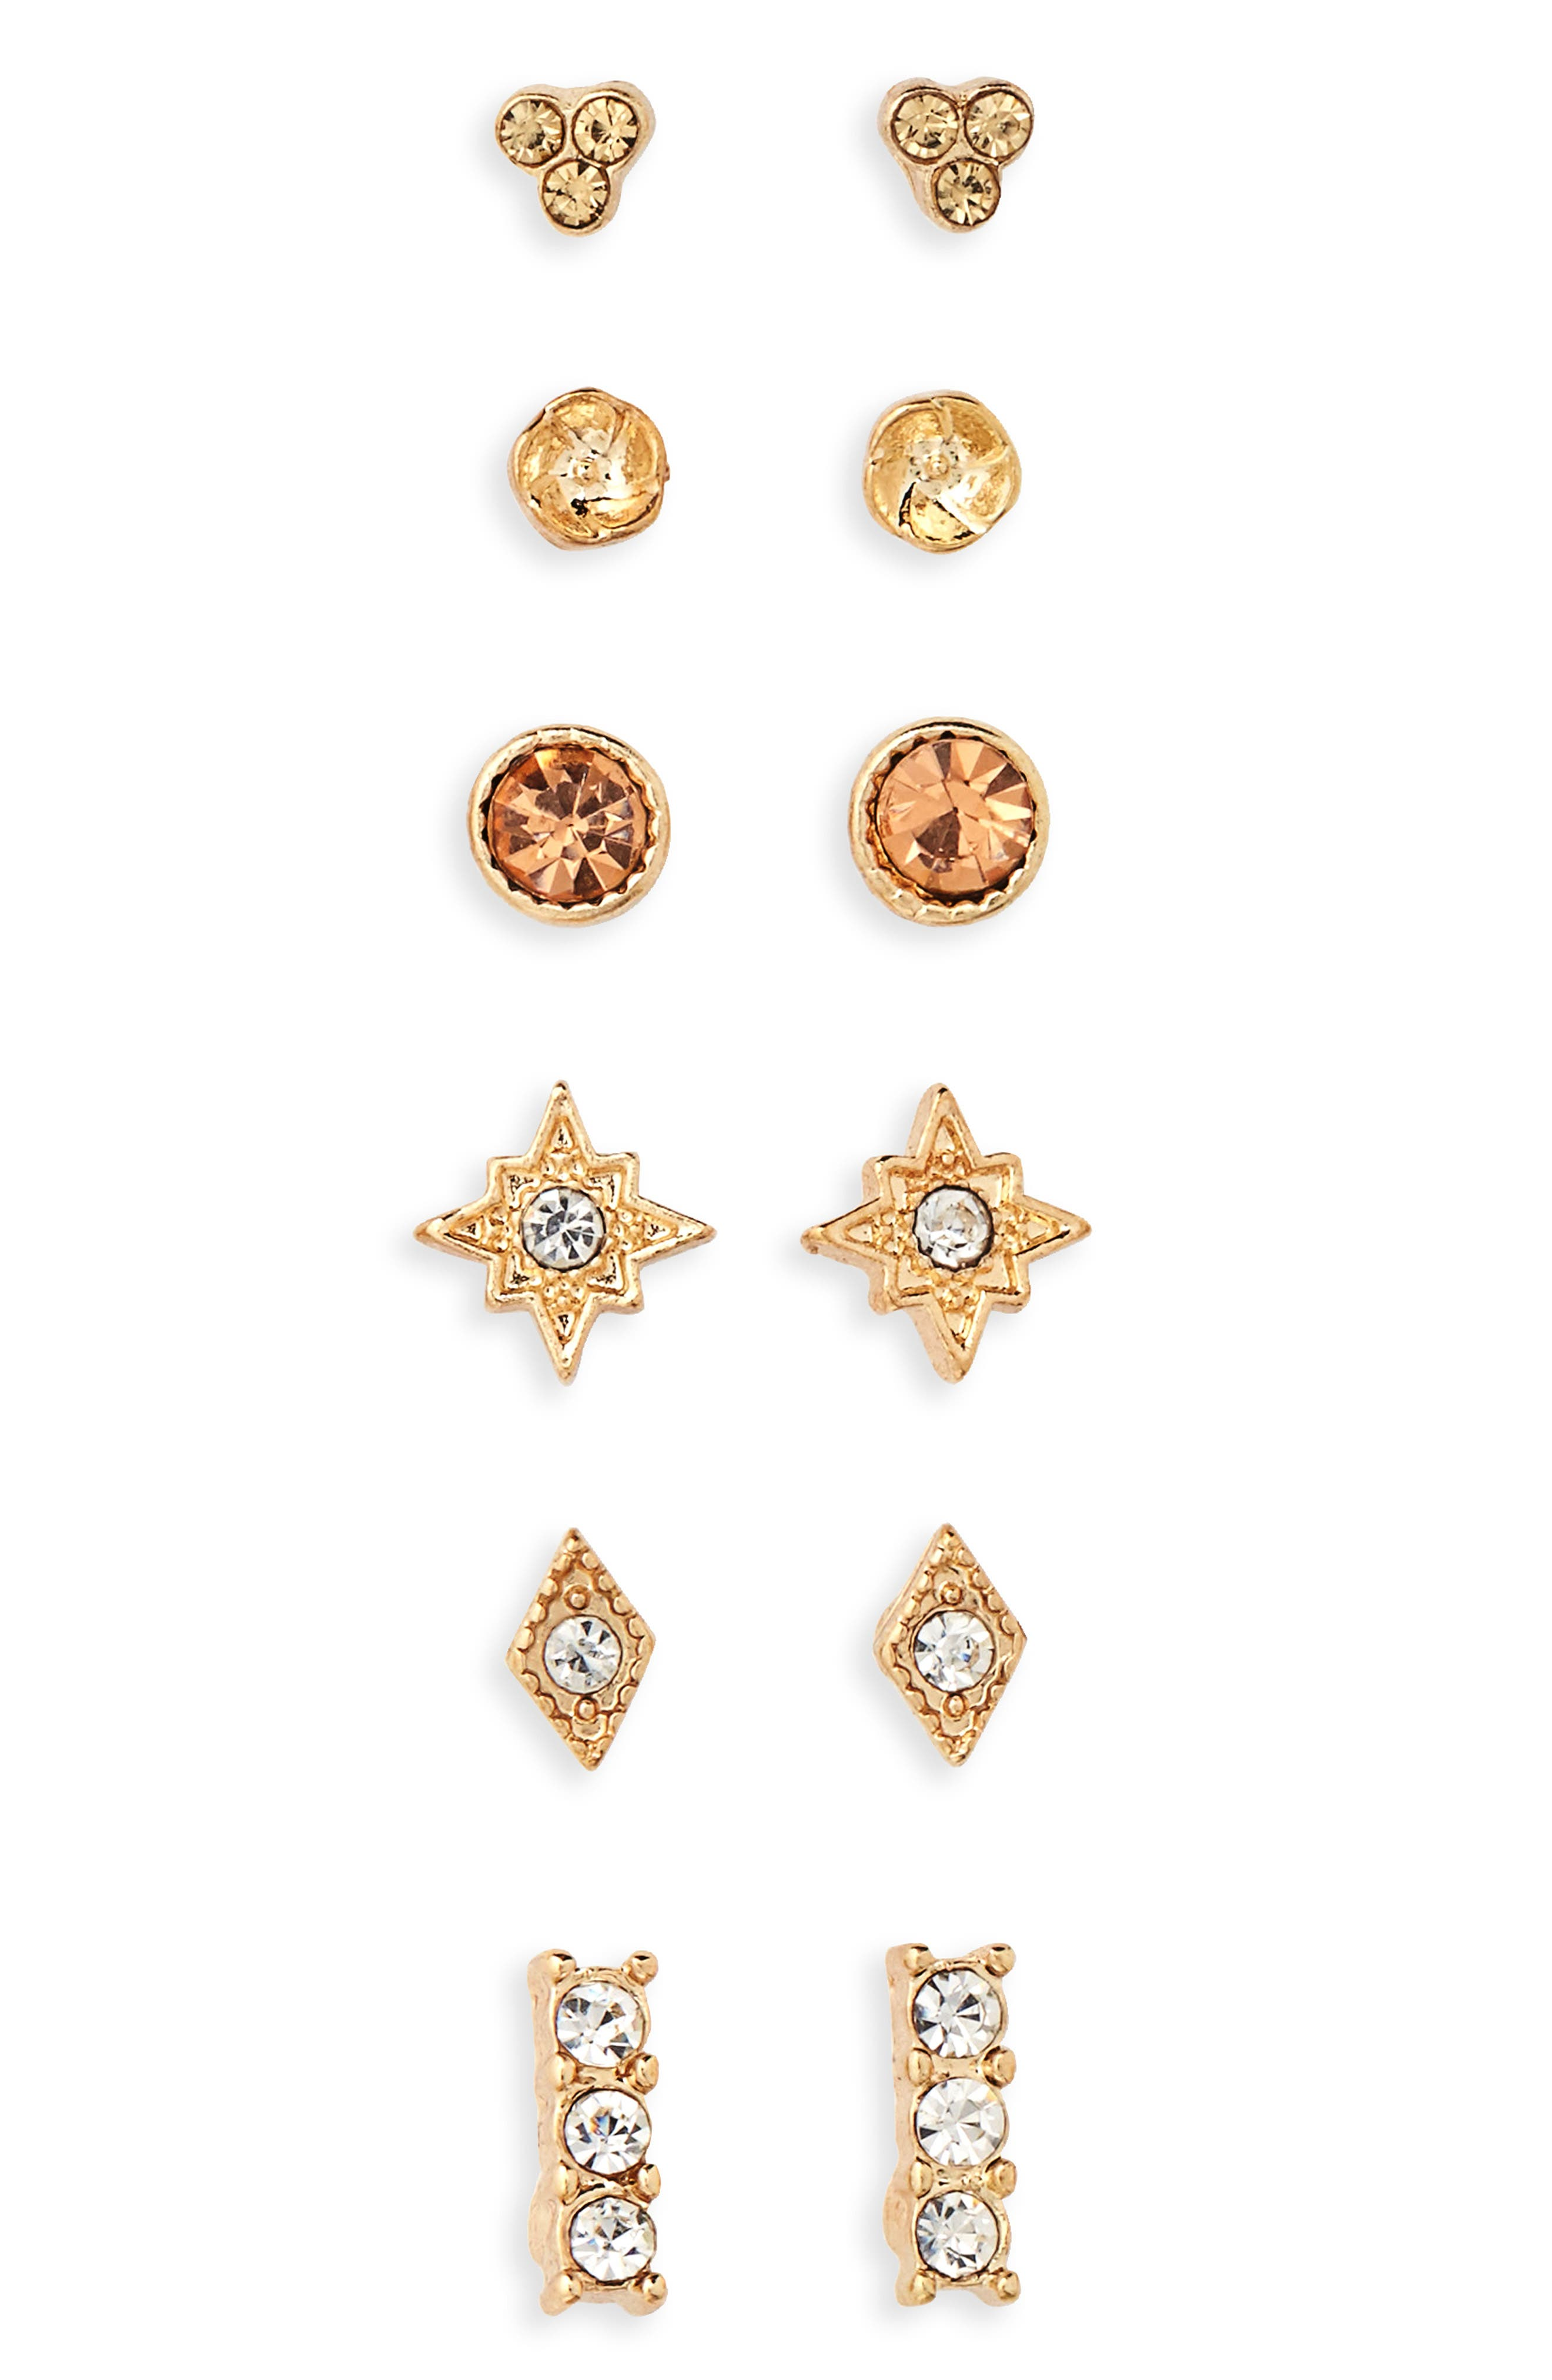 6-Pack Crystal Earrings,                             Main thumbnail 1, color,                             Gold/ Crystal